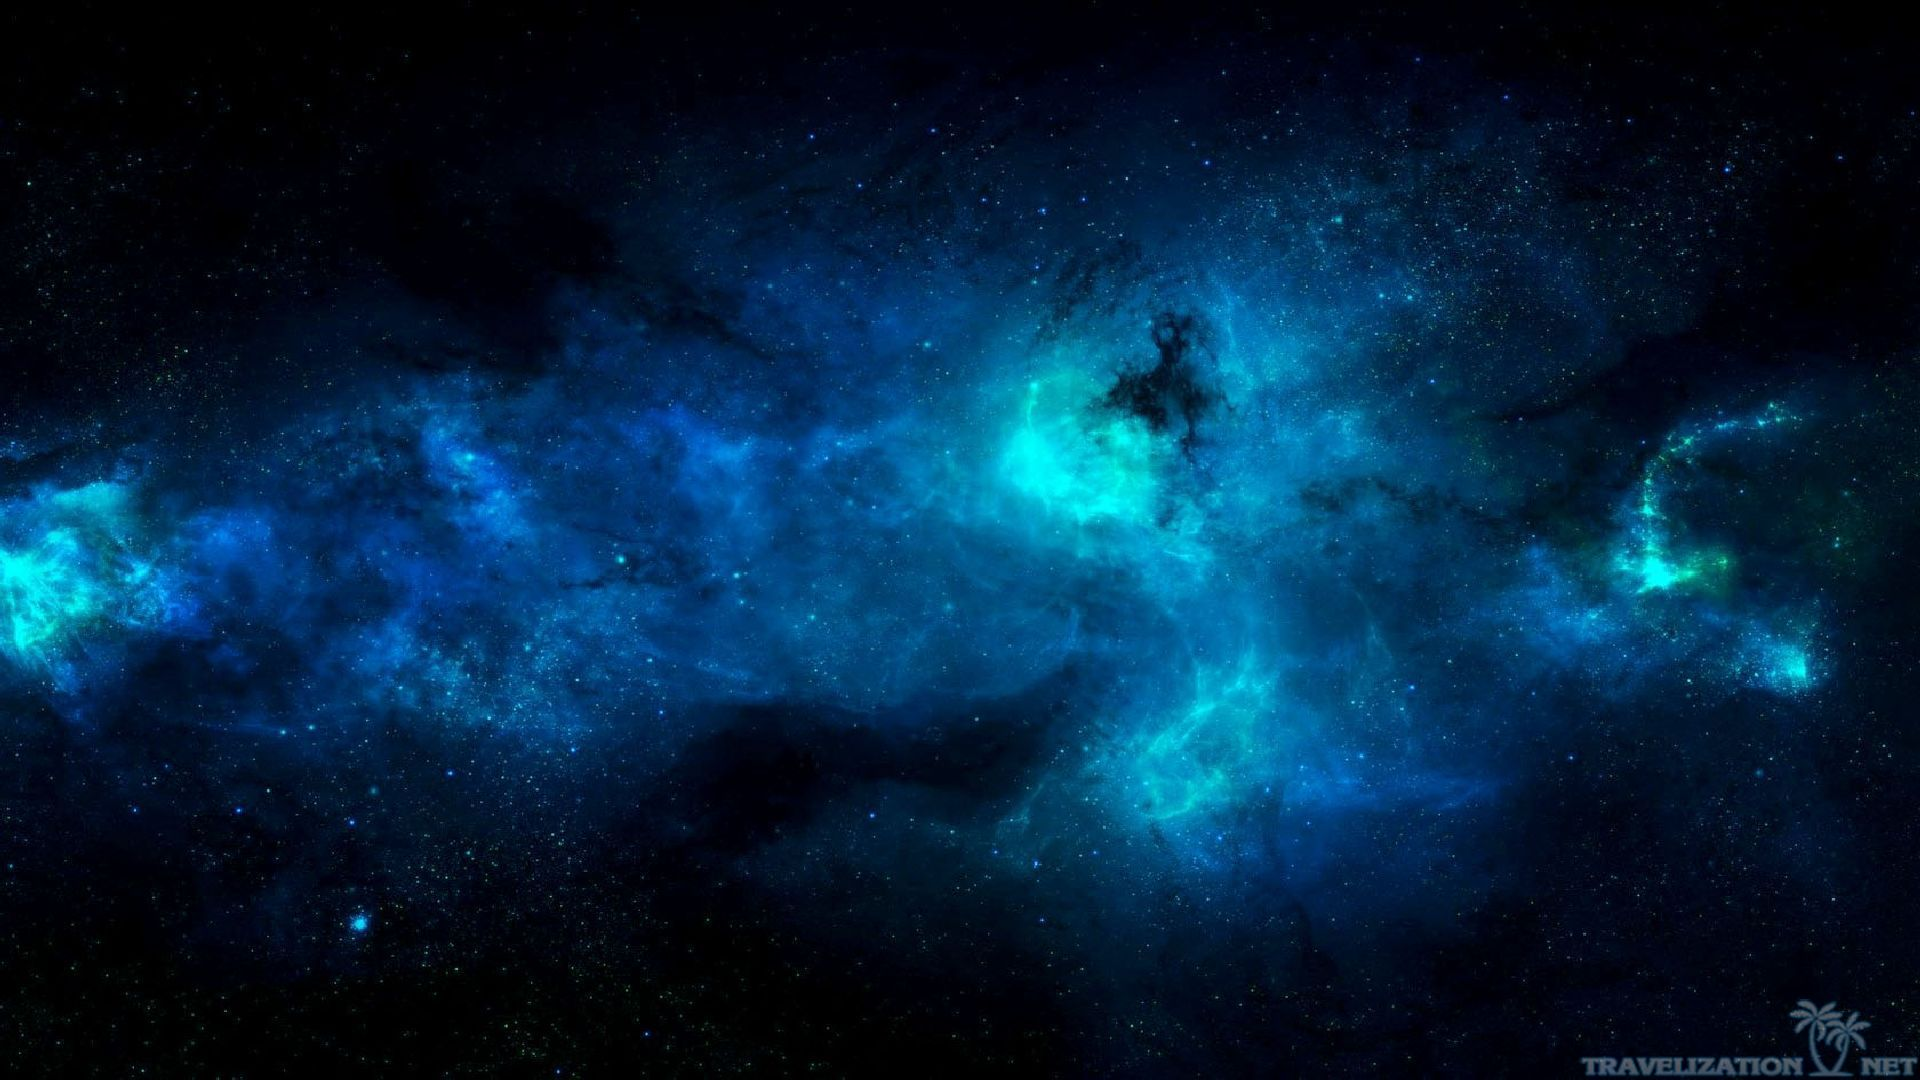 Deep Space Wallpaper 1920x1080